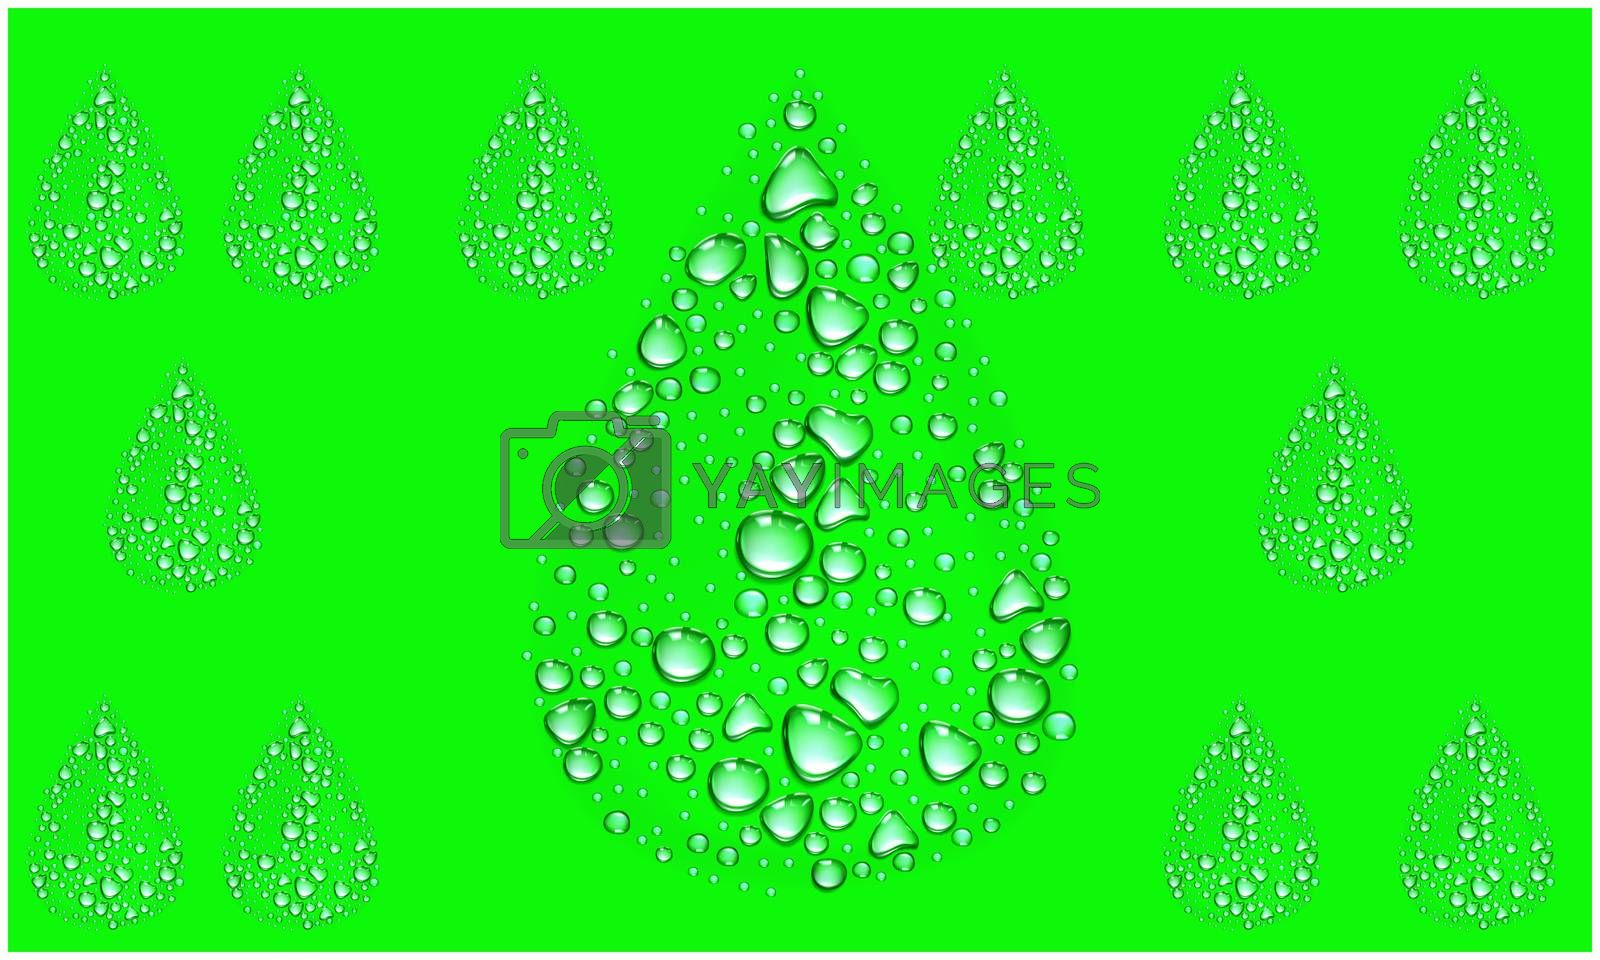 Several Water Droplets on abstract green background